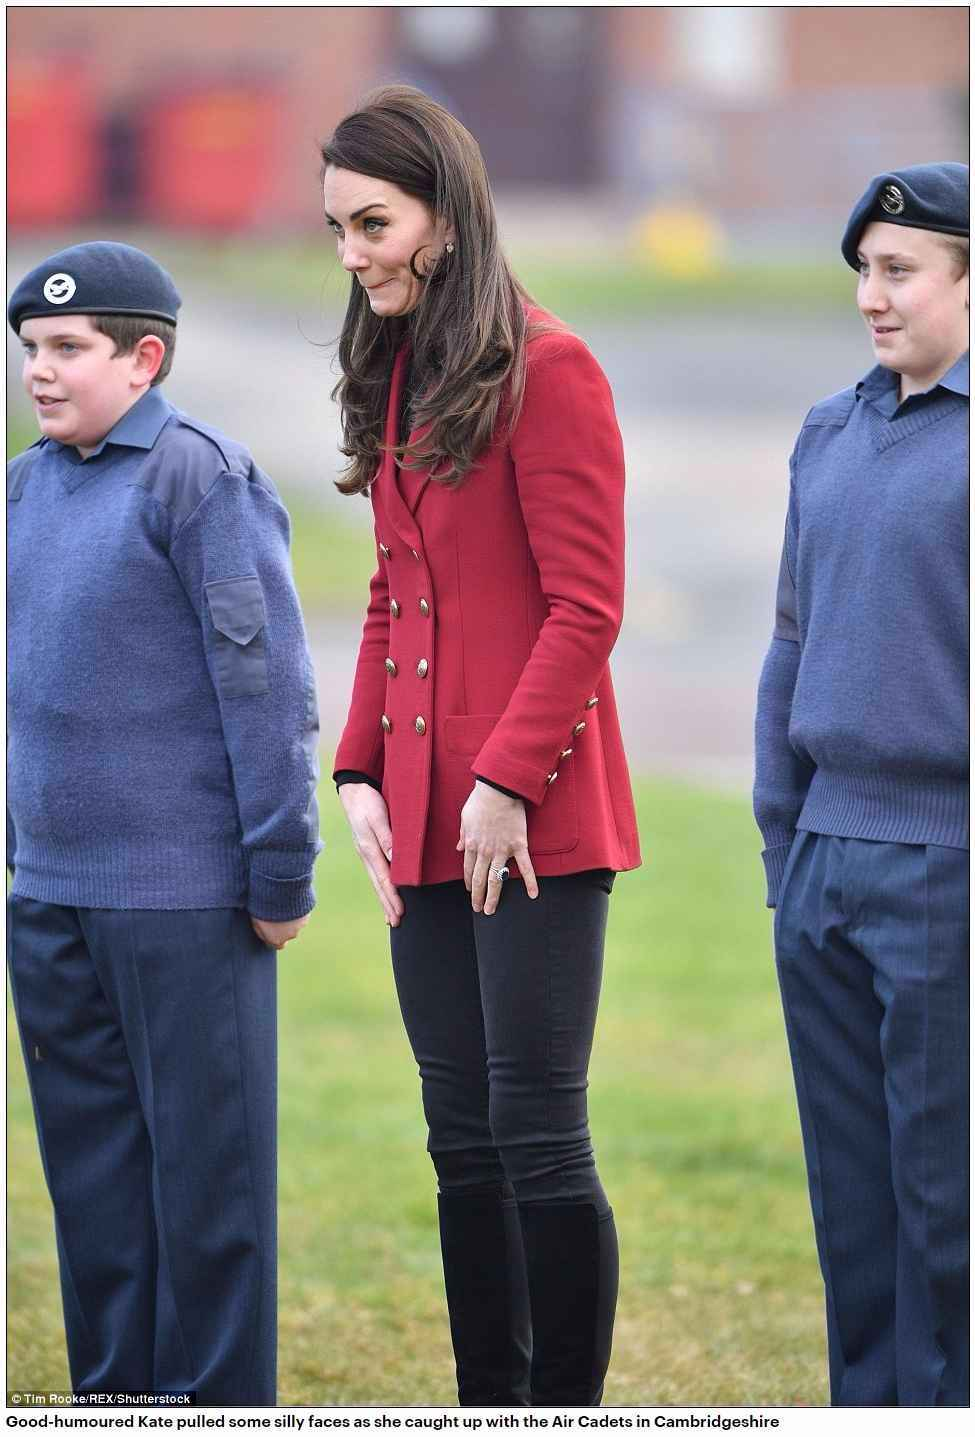 Good-humoured Kate pulled some silly faces as she caught up with the Air Cadets in Cambridgeshire